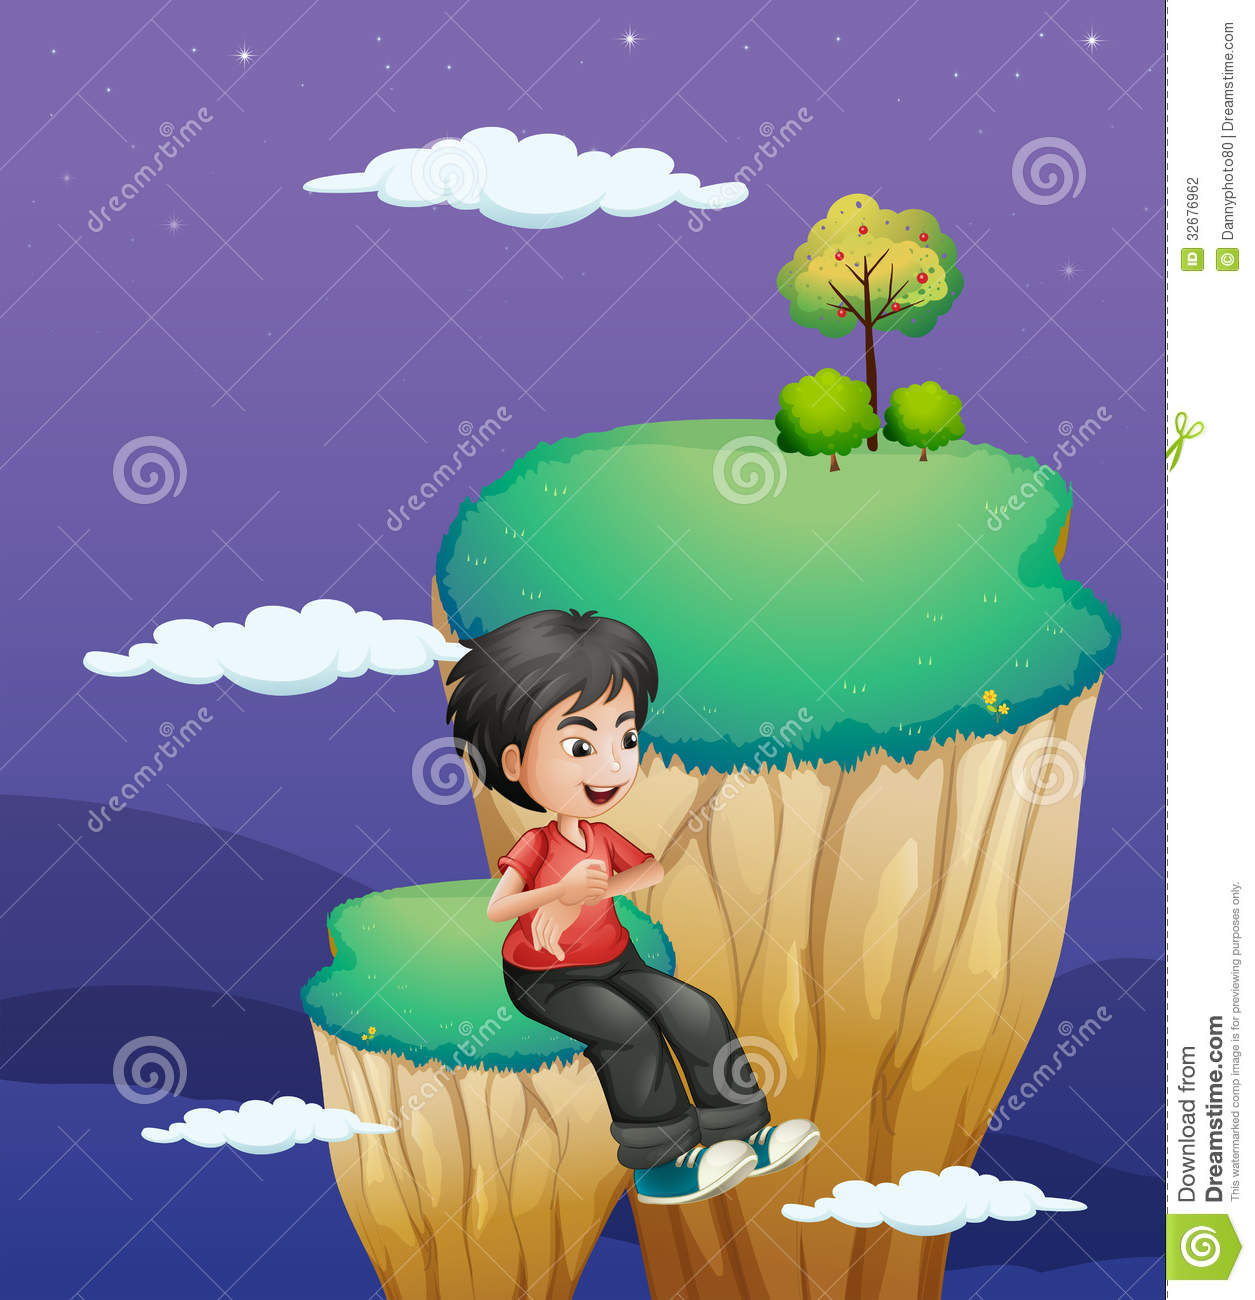 A Boy Waiting For Someone At The Topmost Part Of A Landform Stock